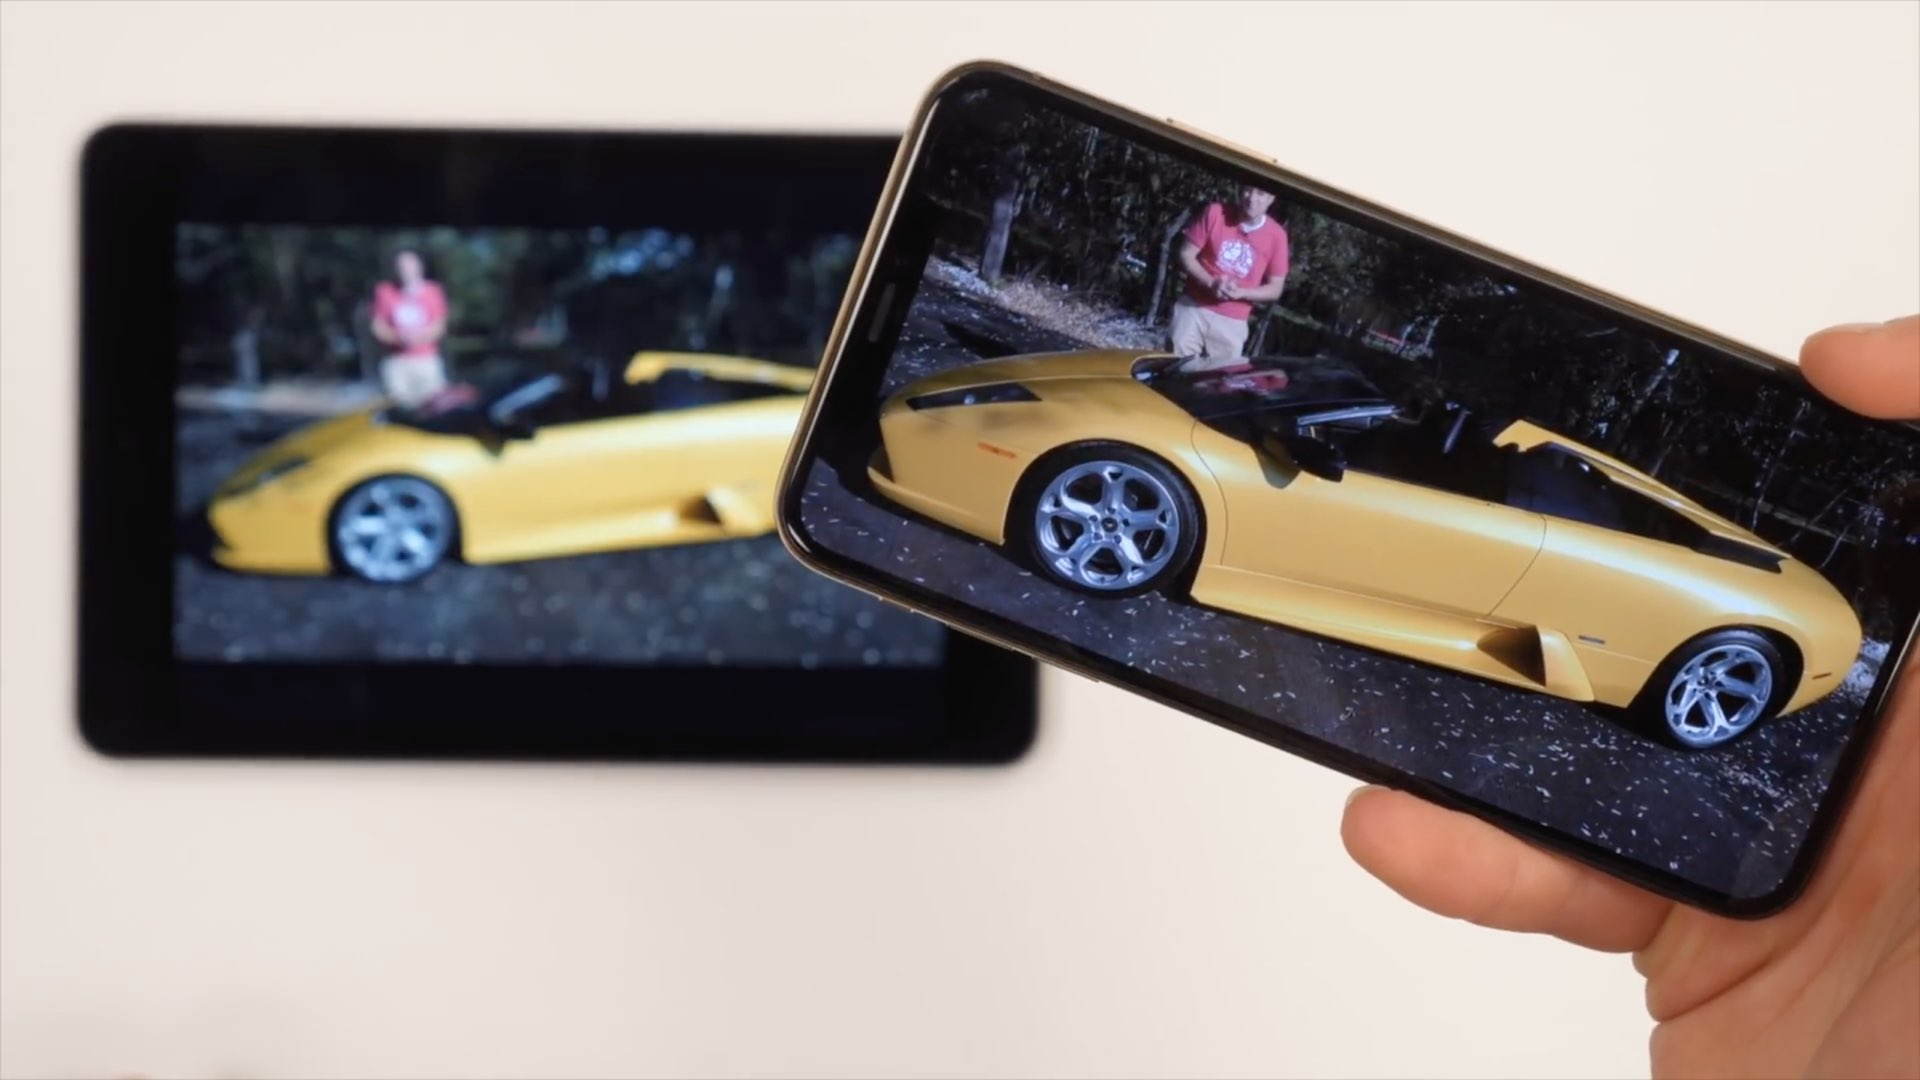 iPad mini vs. iPhone XS Max: how the screen differences influence and inform usability [VIDEO]